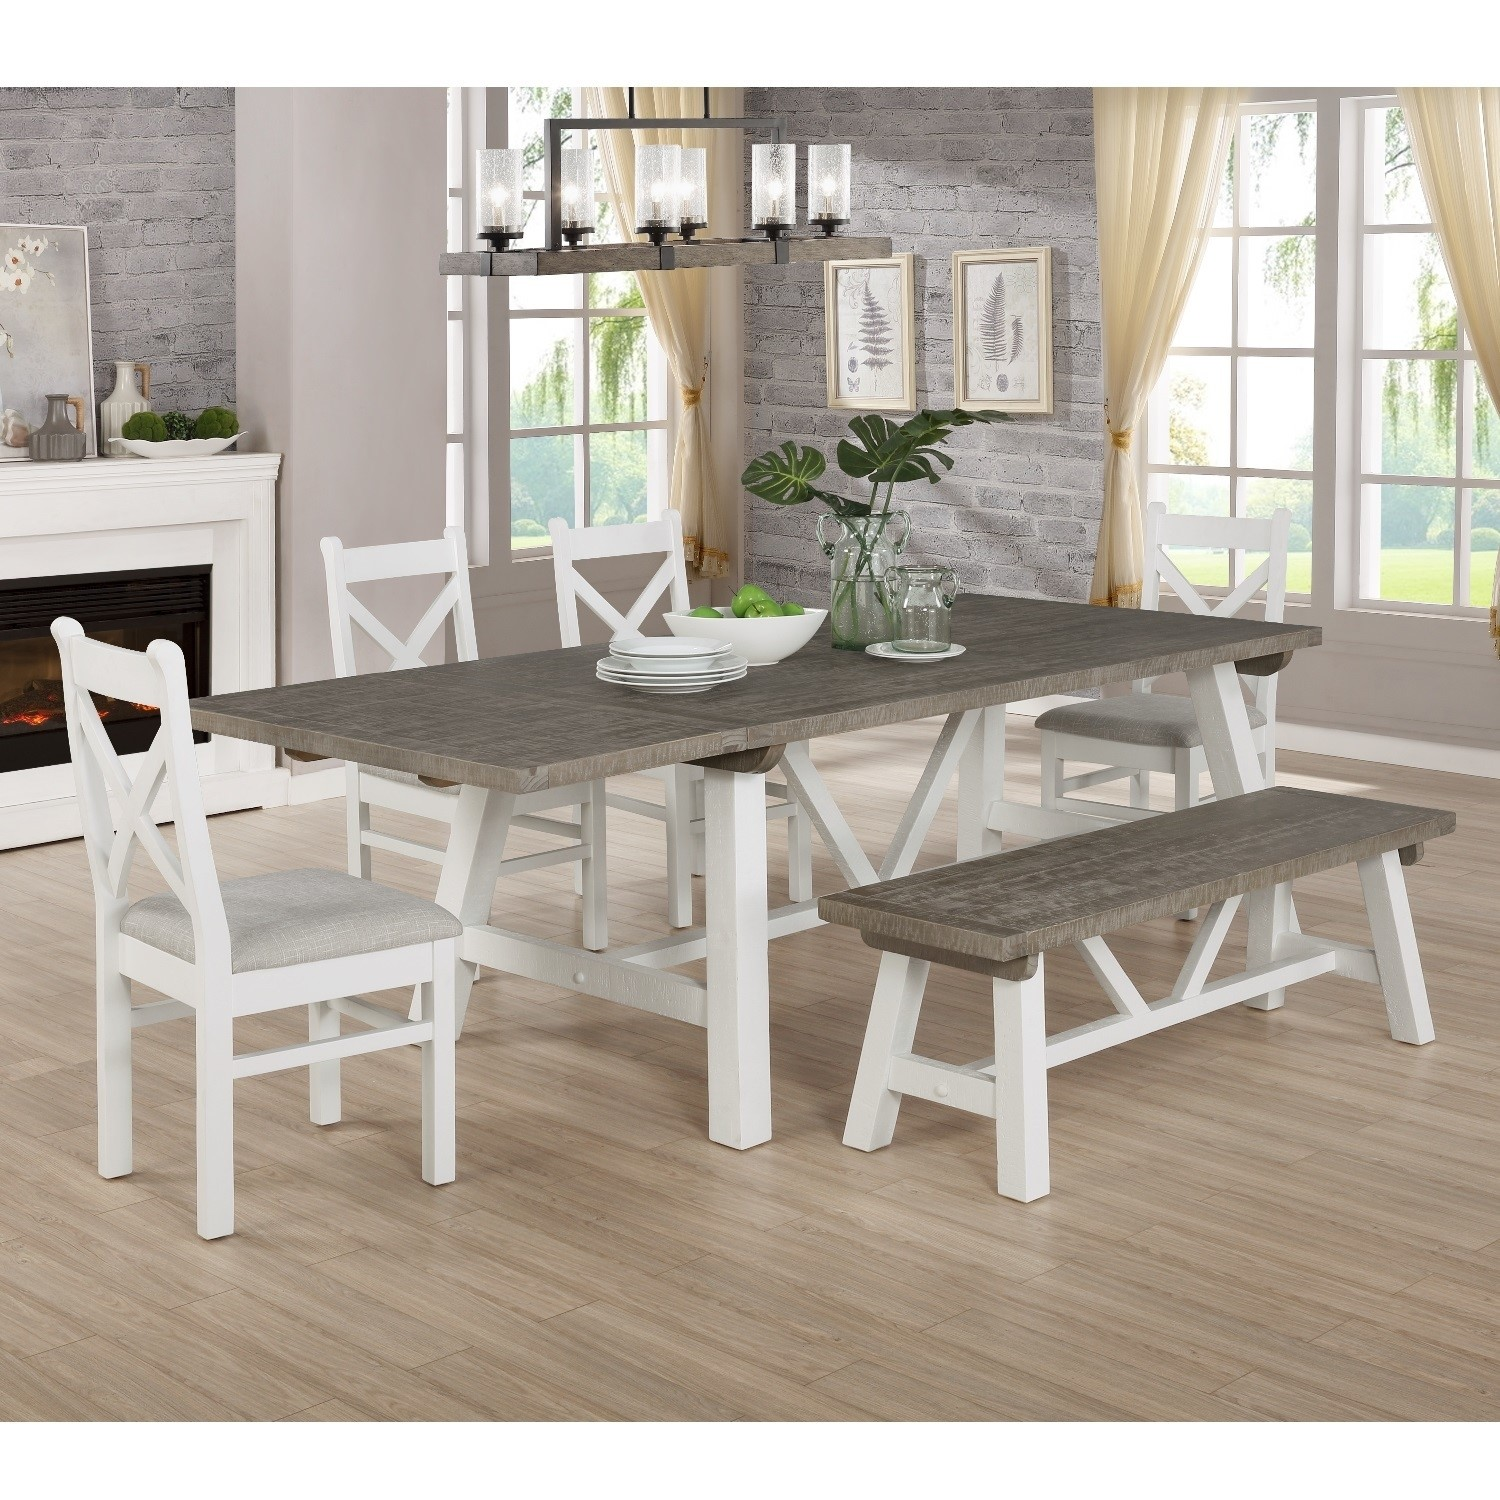 Extendable Wood Dining Table In White Grey Wash With 4 Chairs 1 Bench Fawsley Furniture123